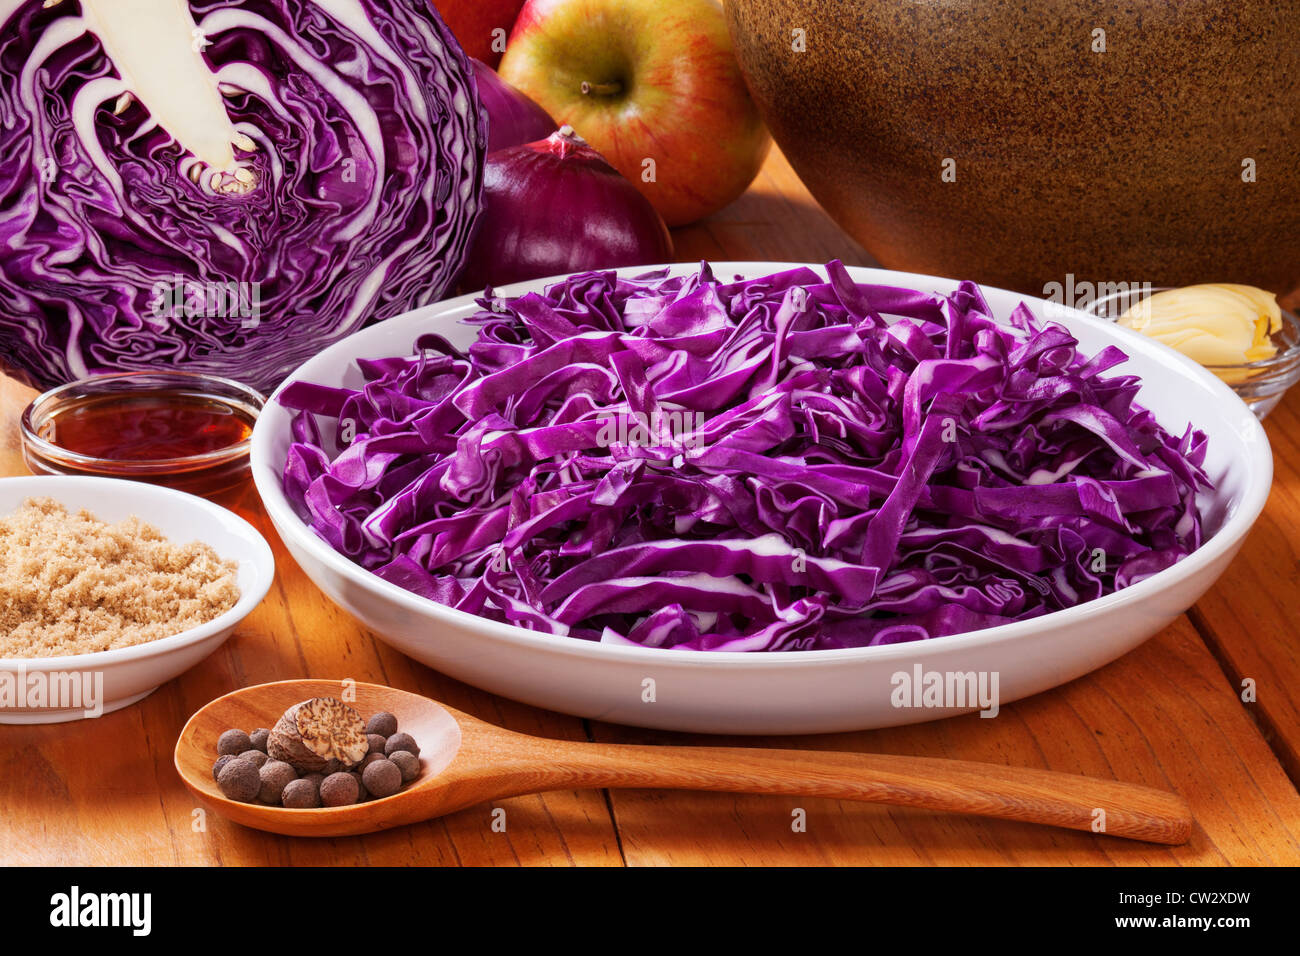 Ingredients for spiced red cabbage with apple, delicious with Christmas meats. - Stock Image